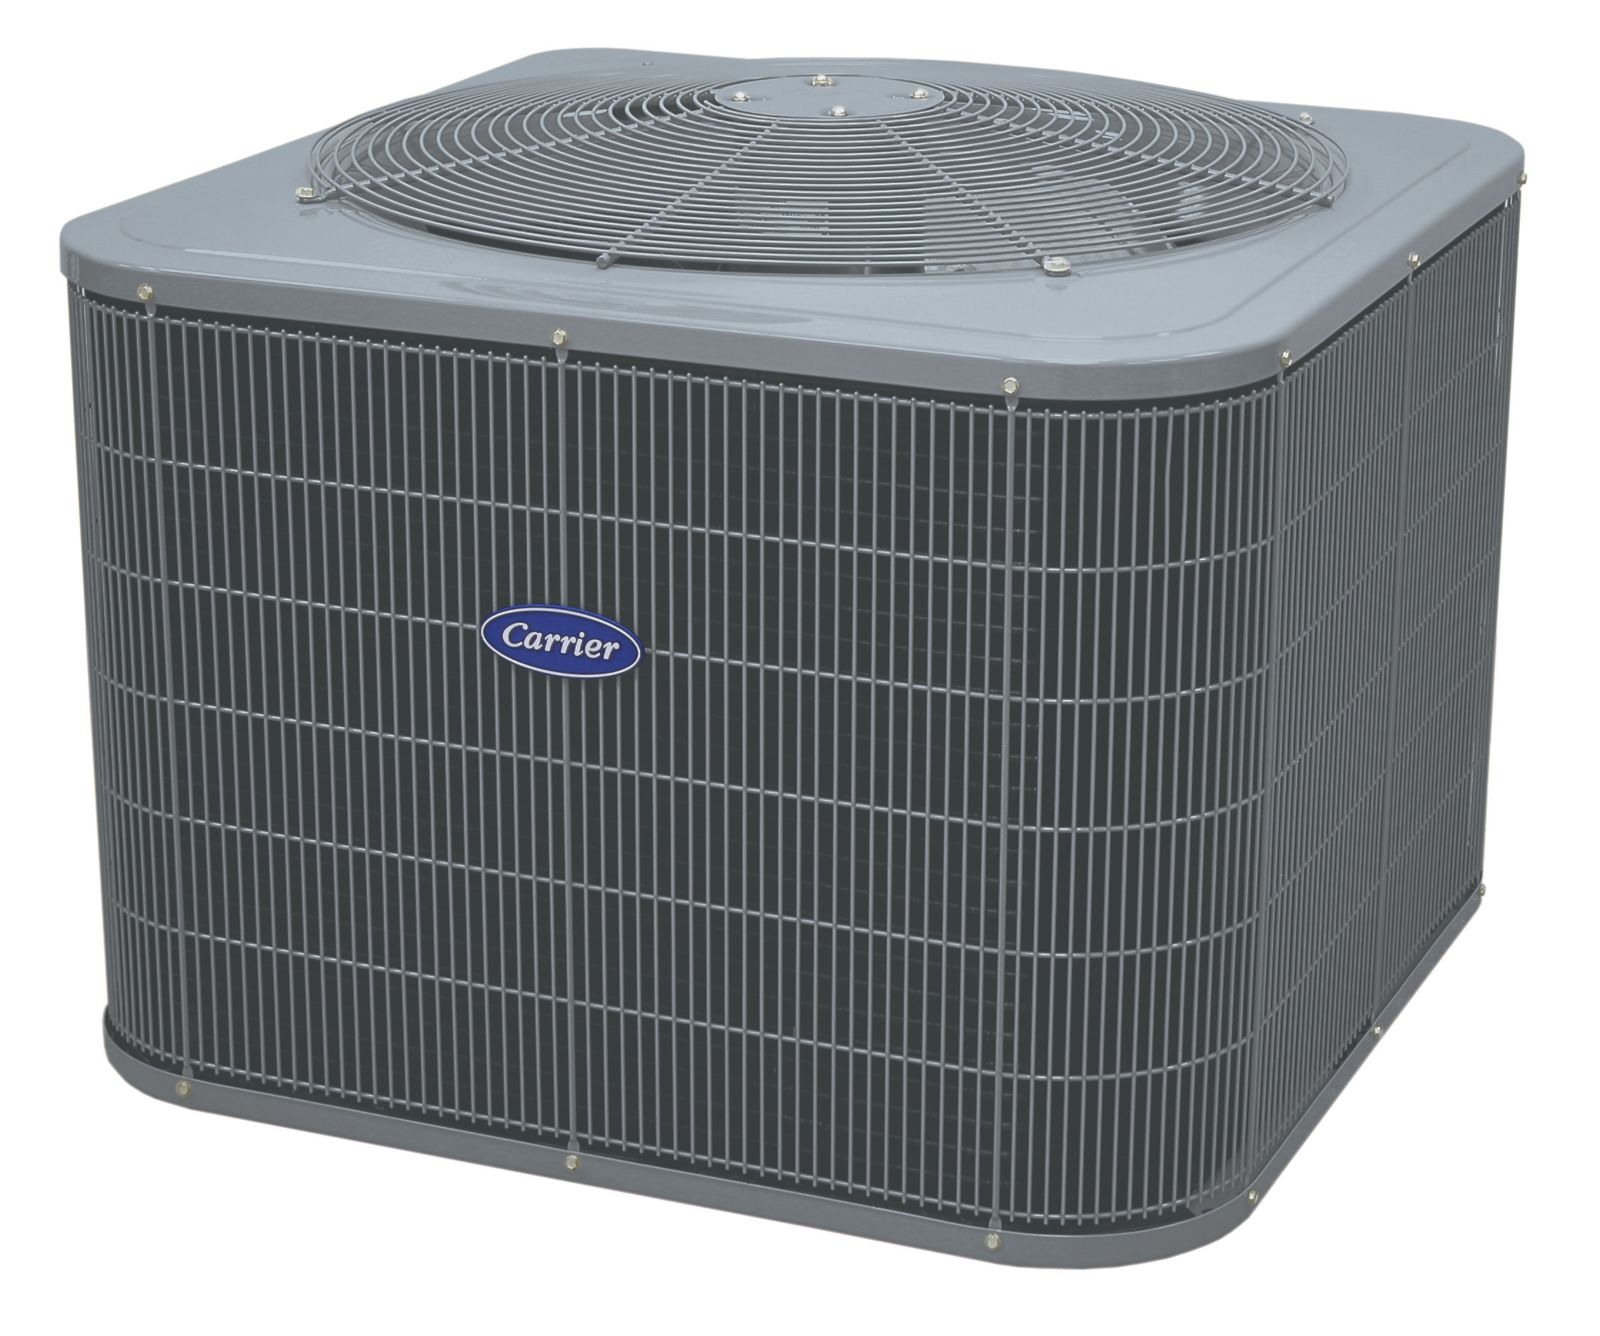 carrier® comfort™ - 5 ton 16 seer residential air conditioner